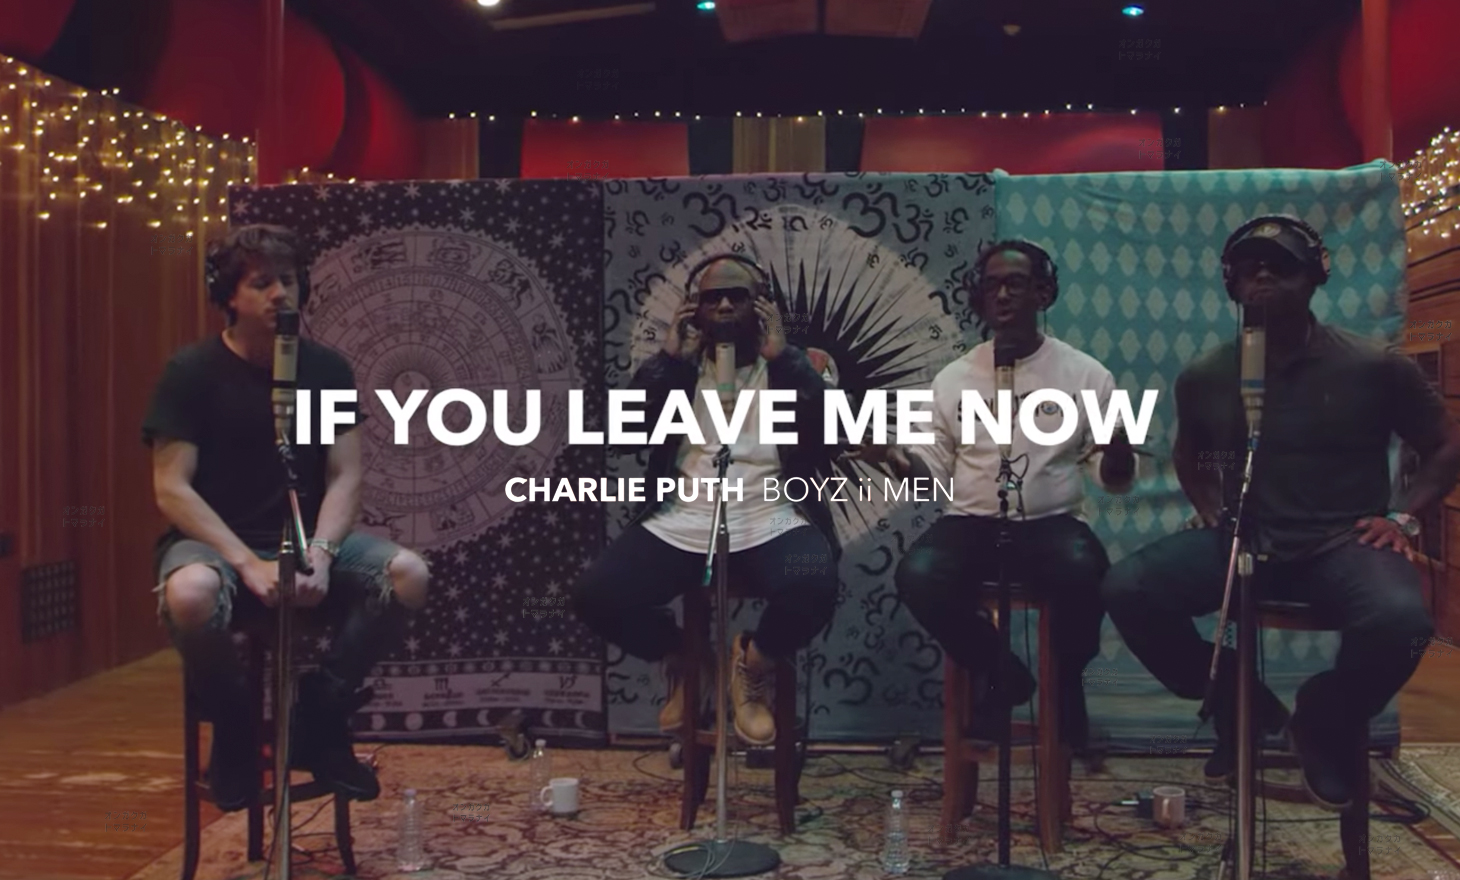 Charlie Puth : If You Leave Me Now feat. Boyz II Men